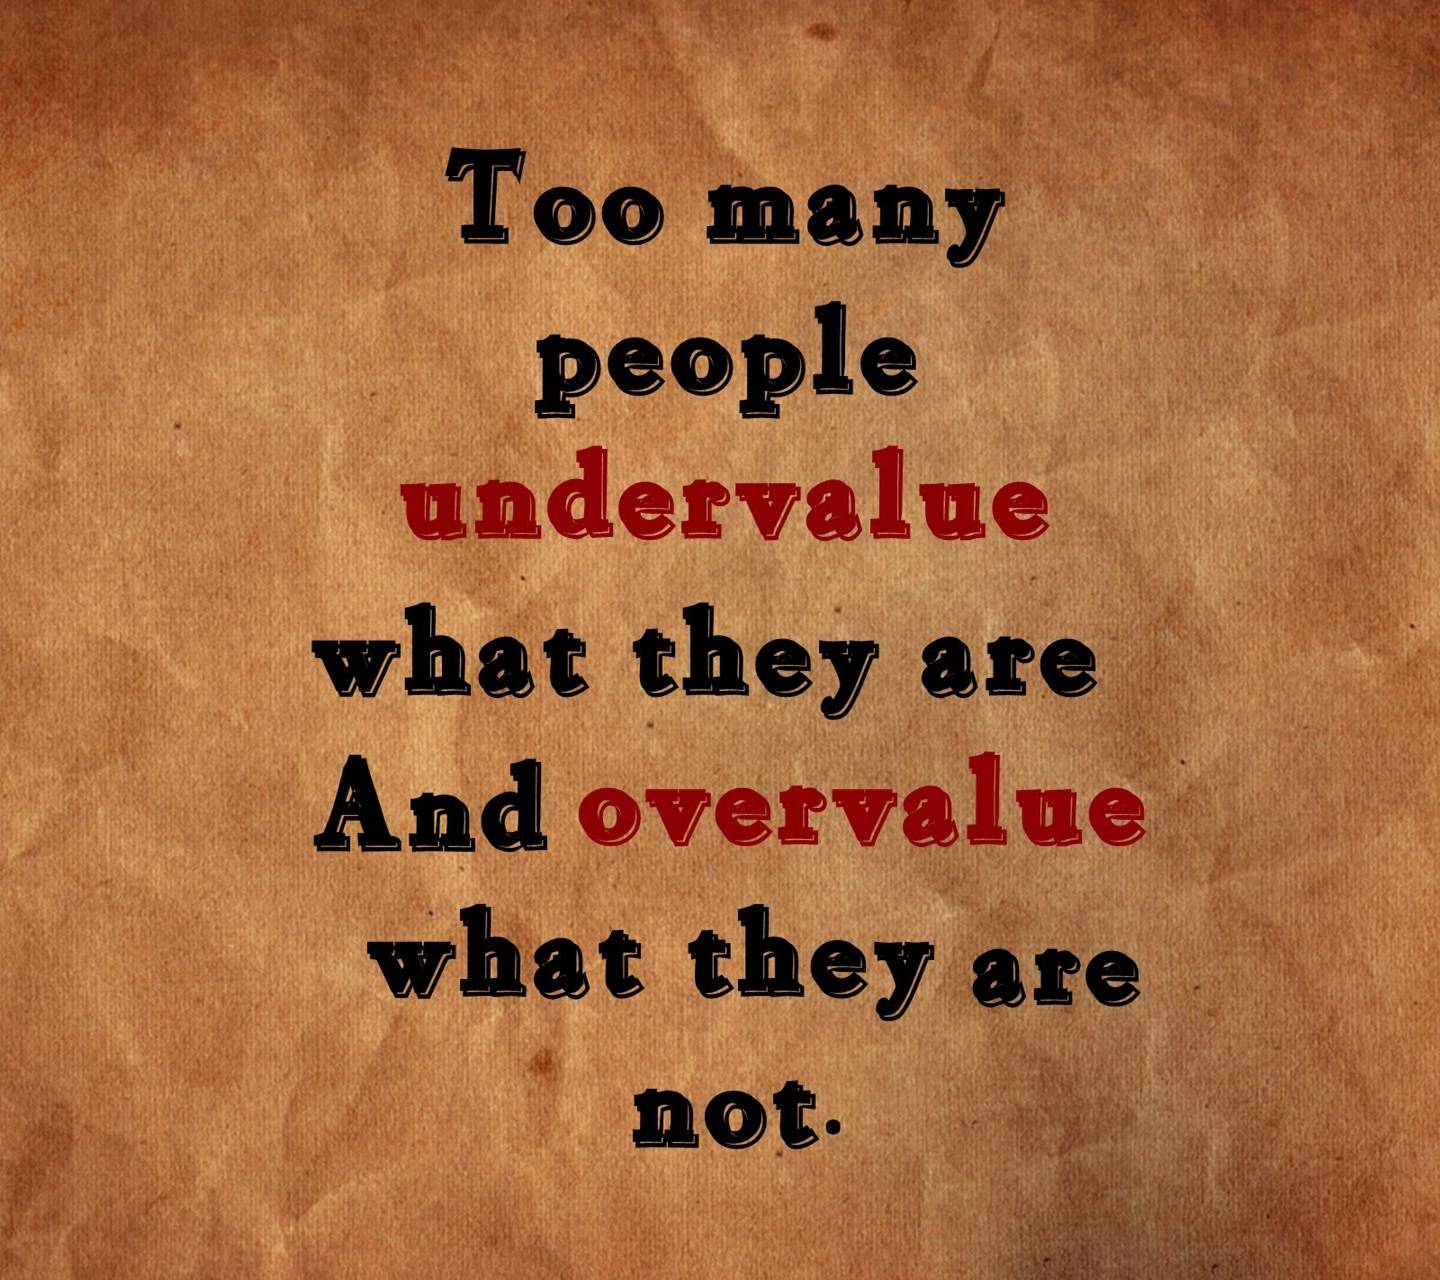 Undervalue